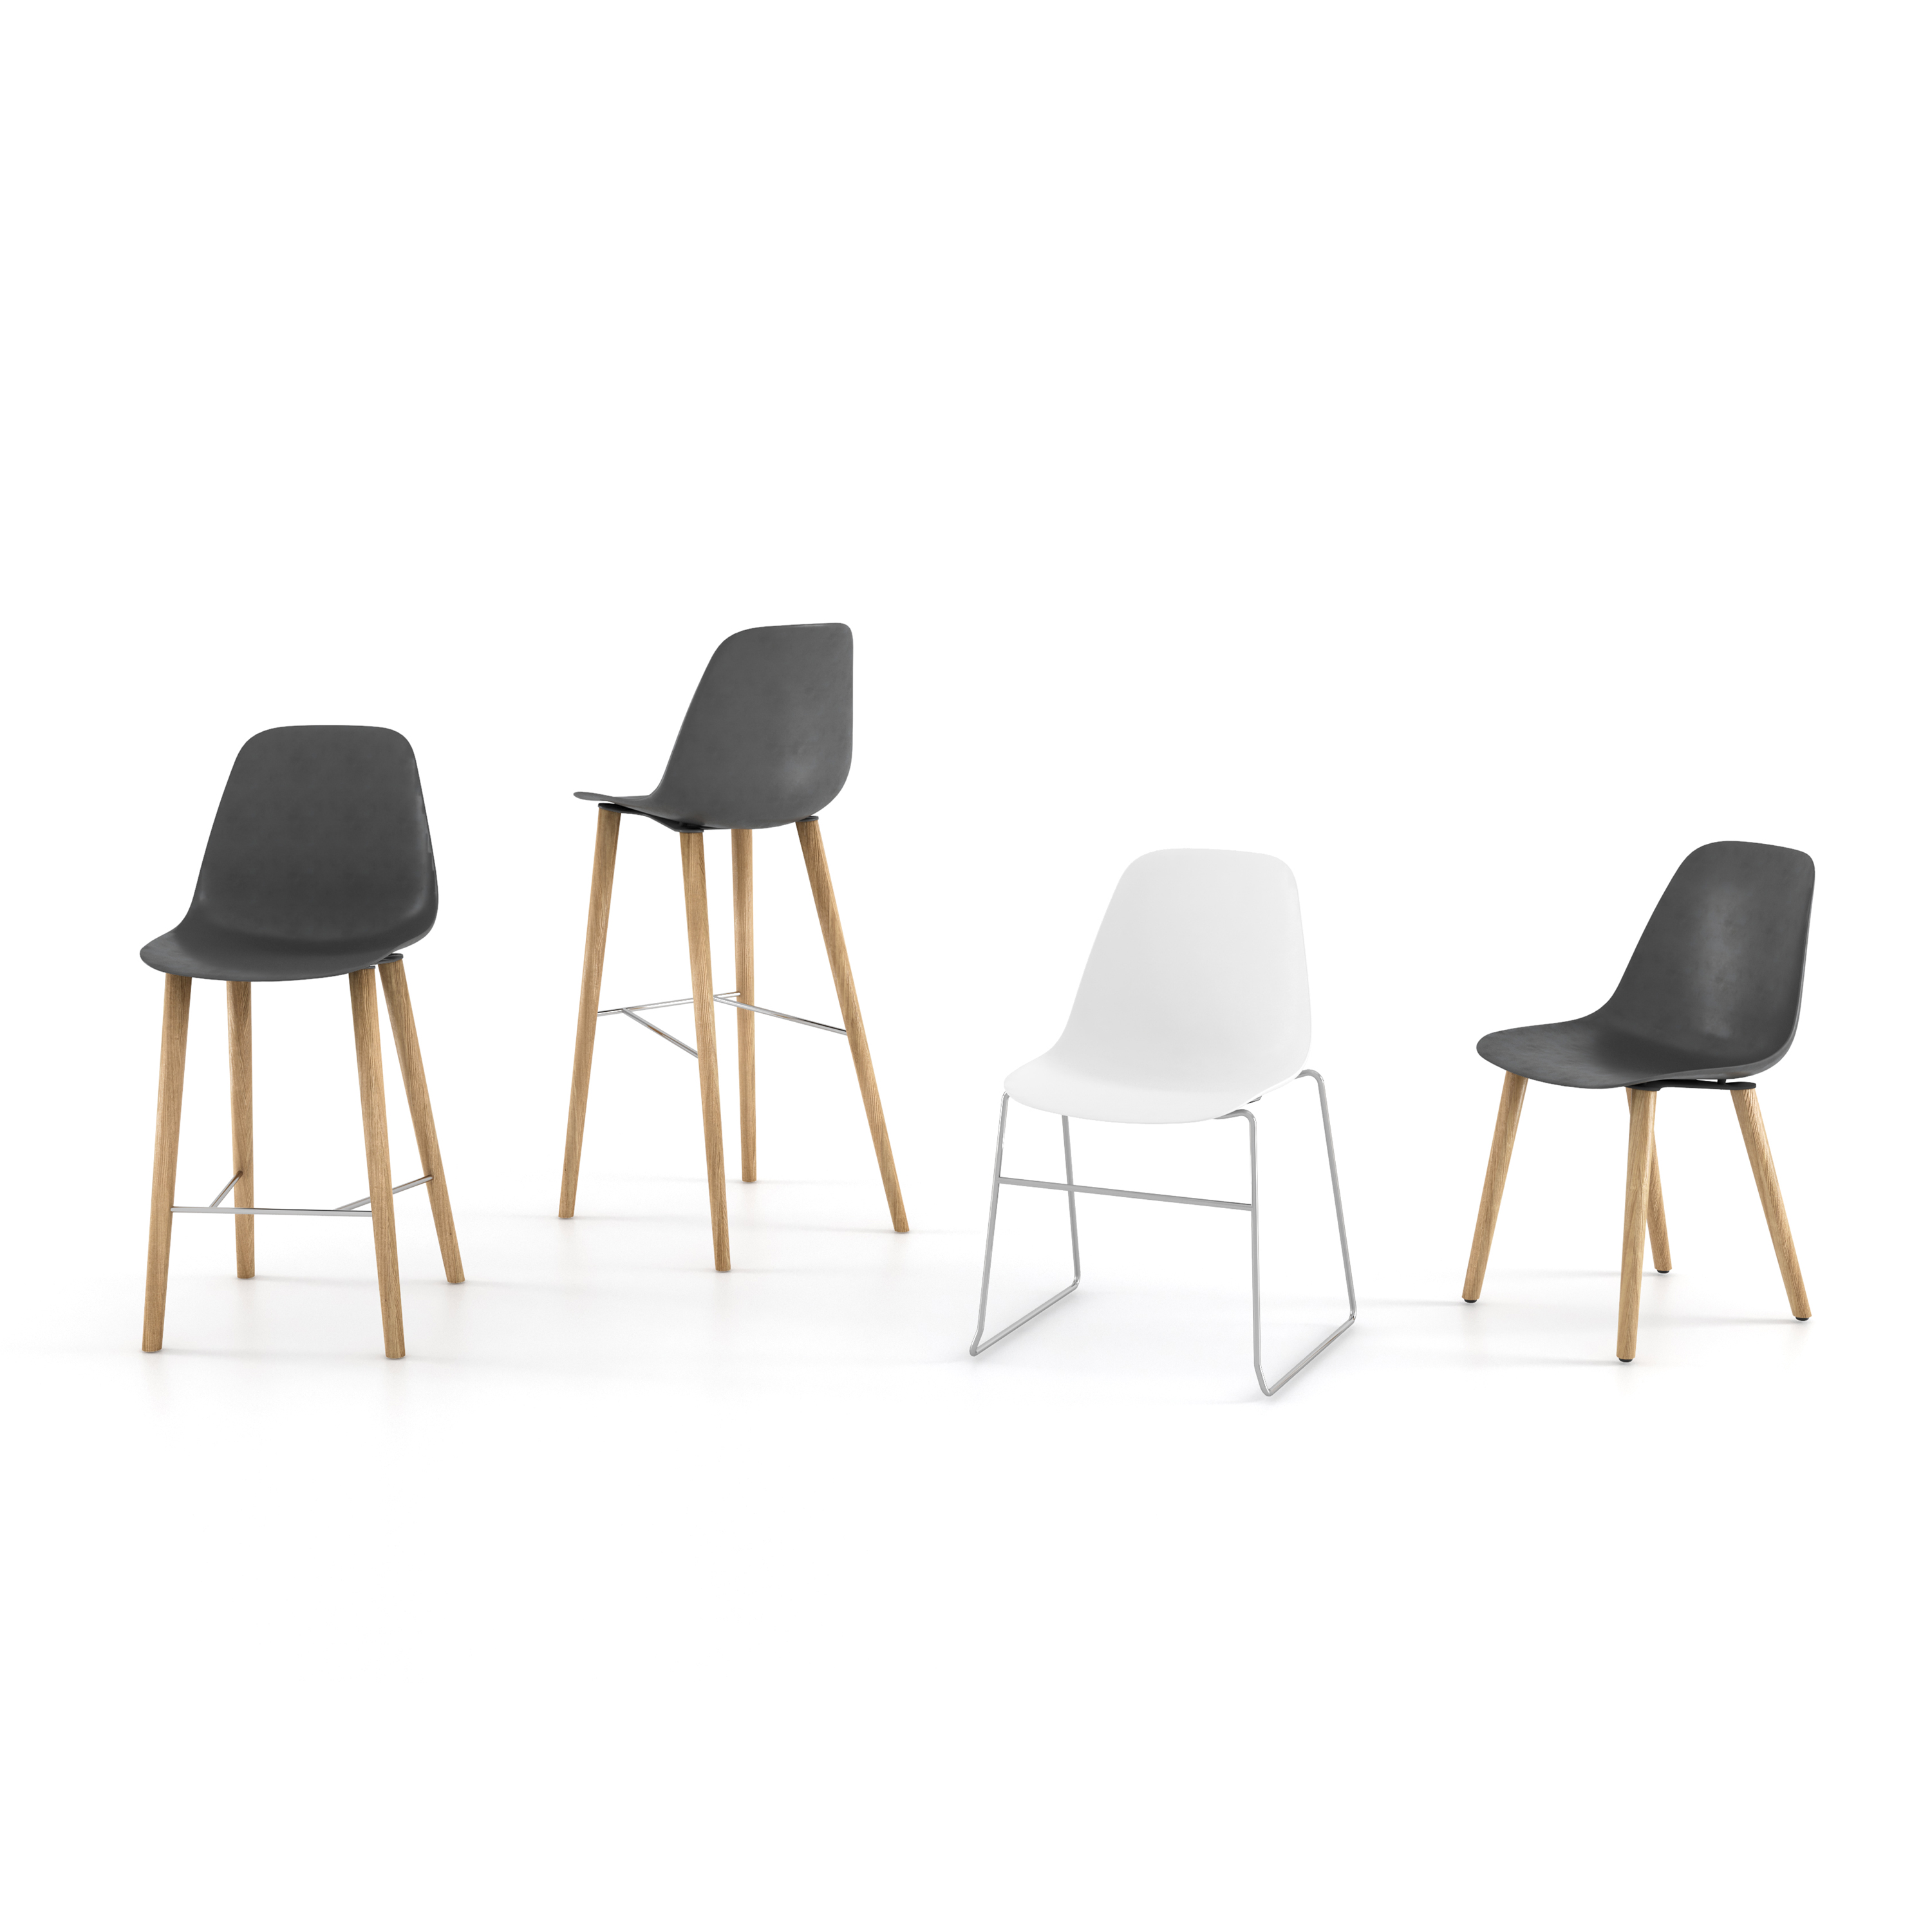 03S_Estel_comfort&Relax_Chairs&Stool_Pola